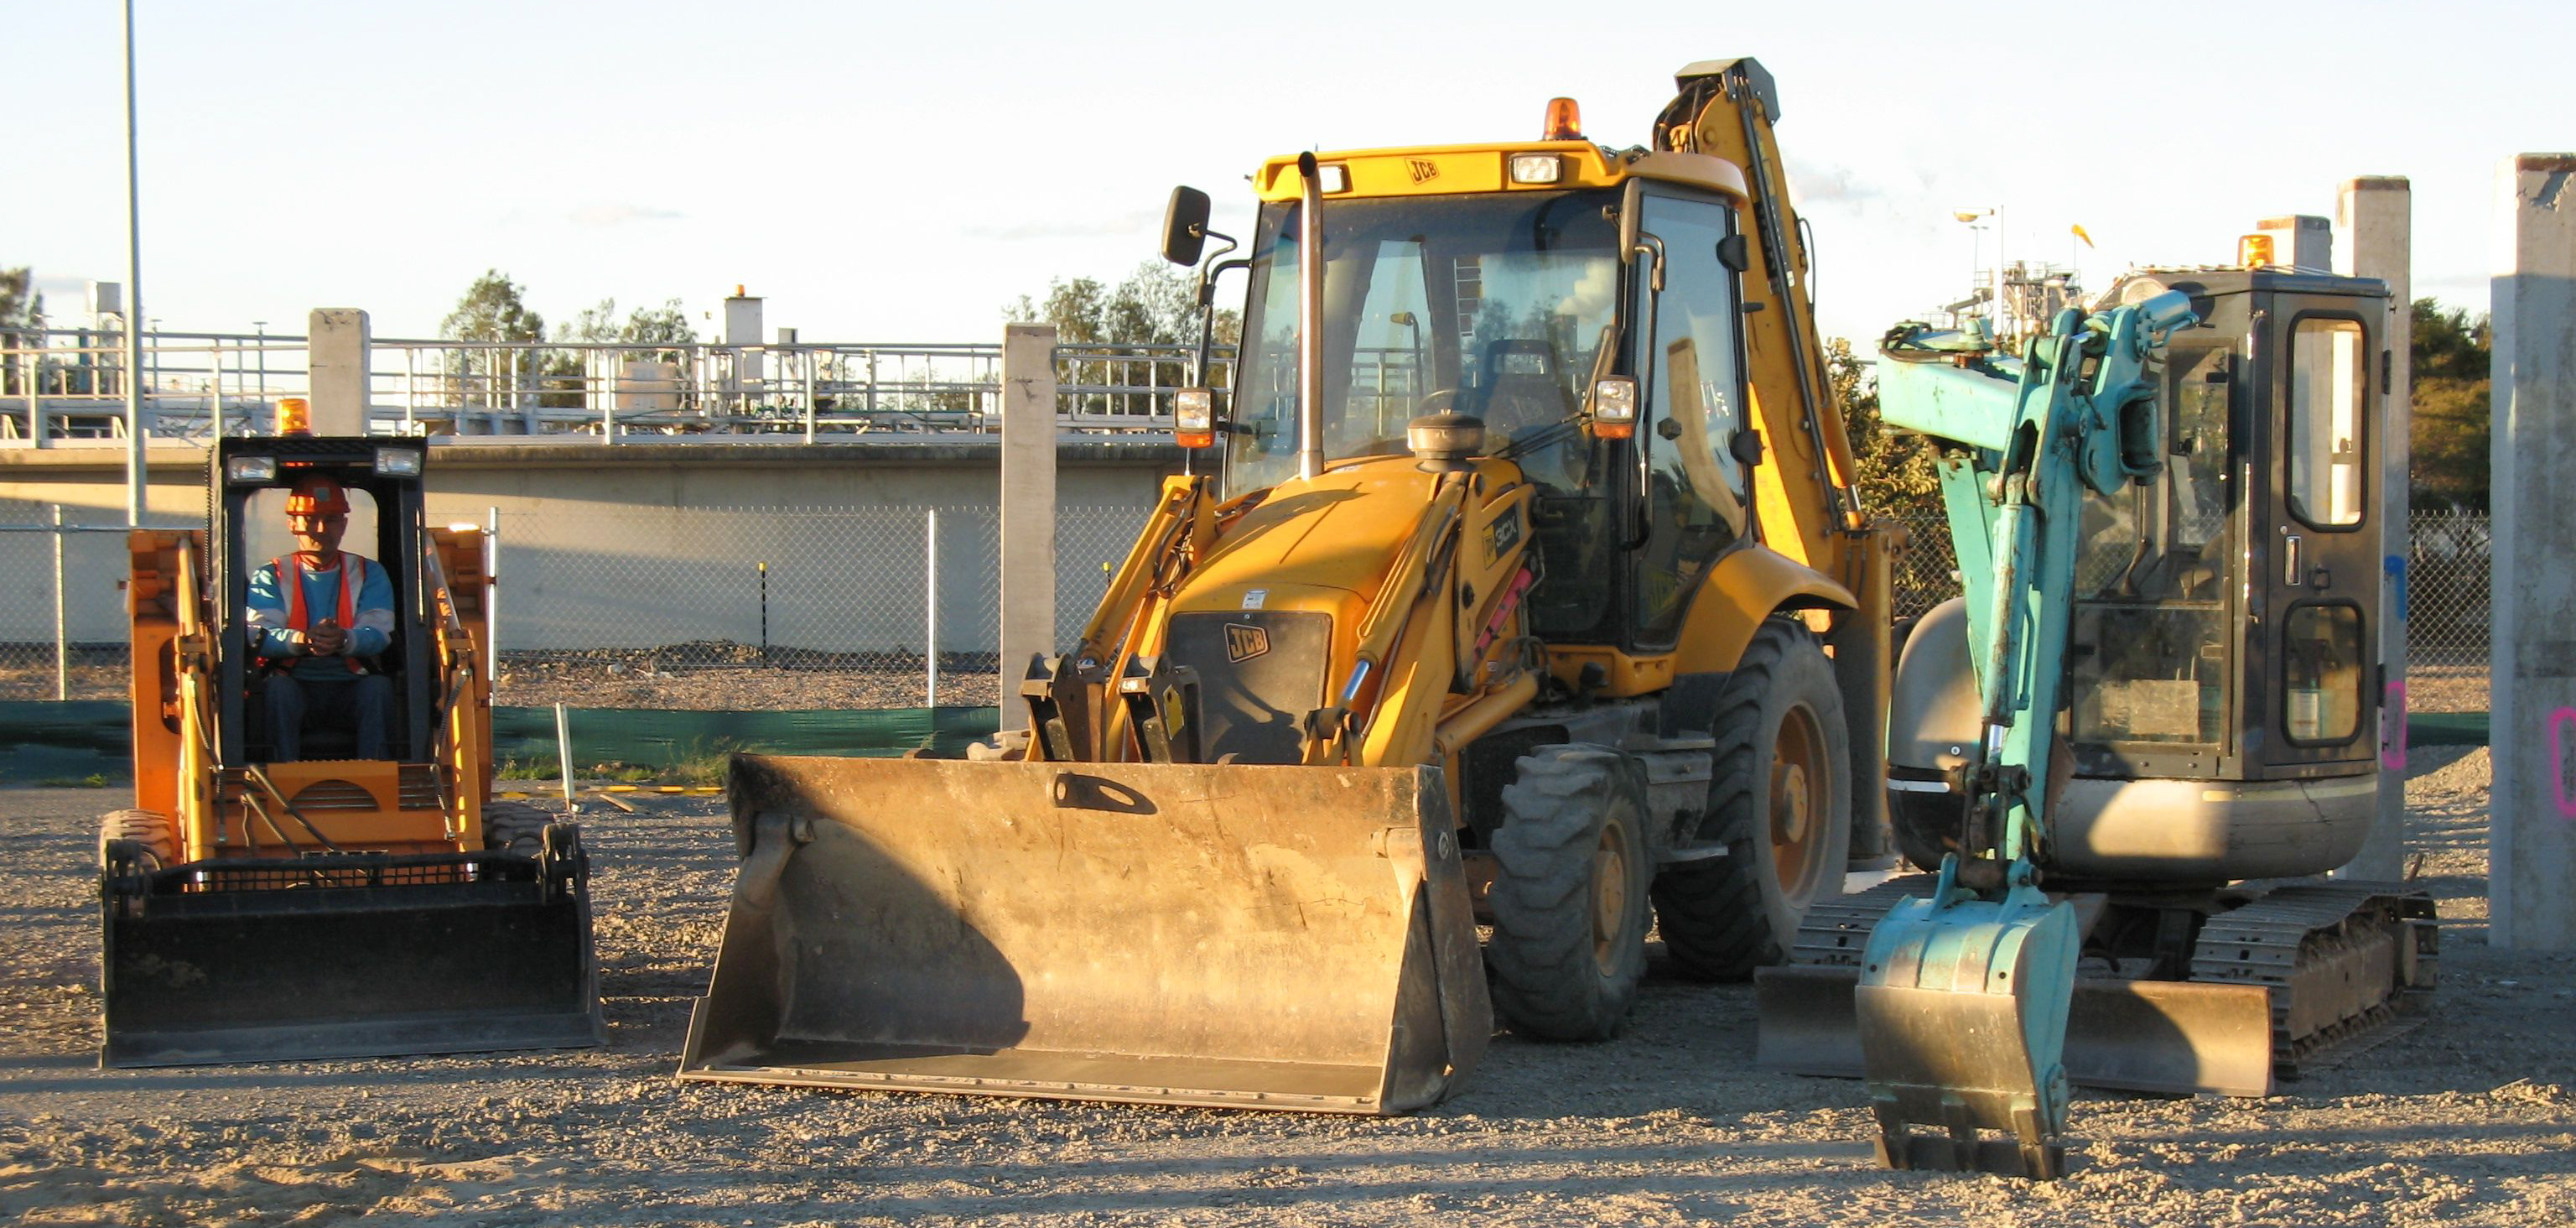 Redlands earthmoving and excavation services